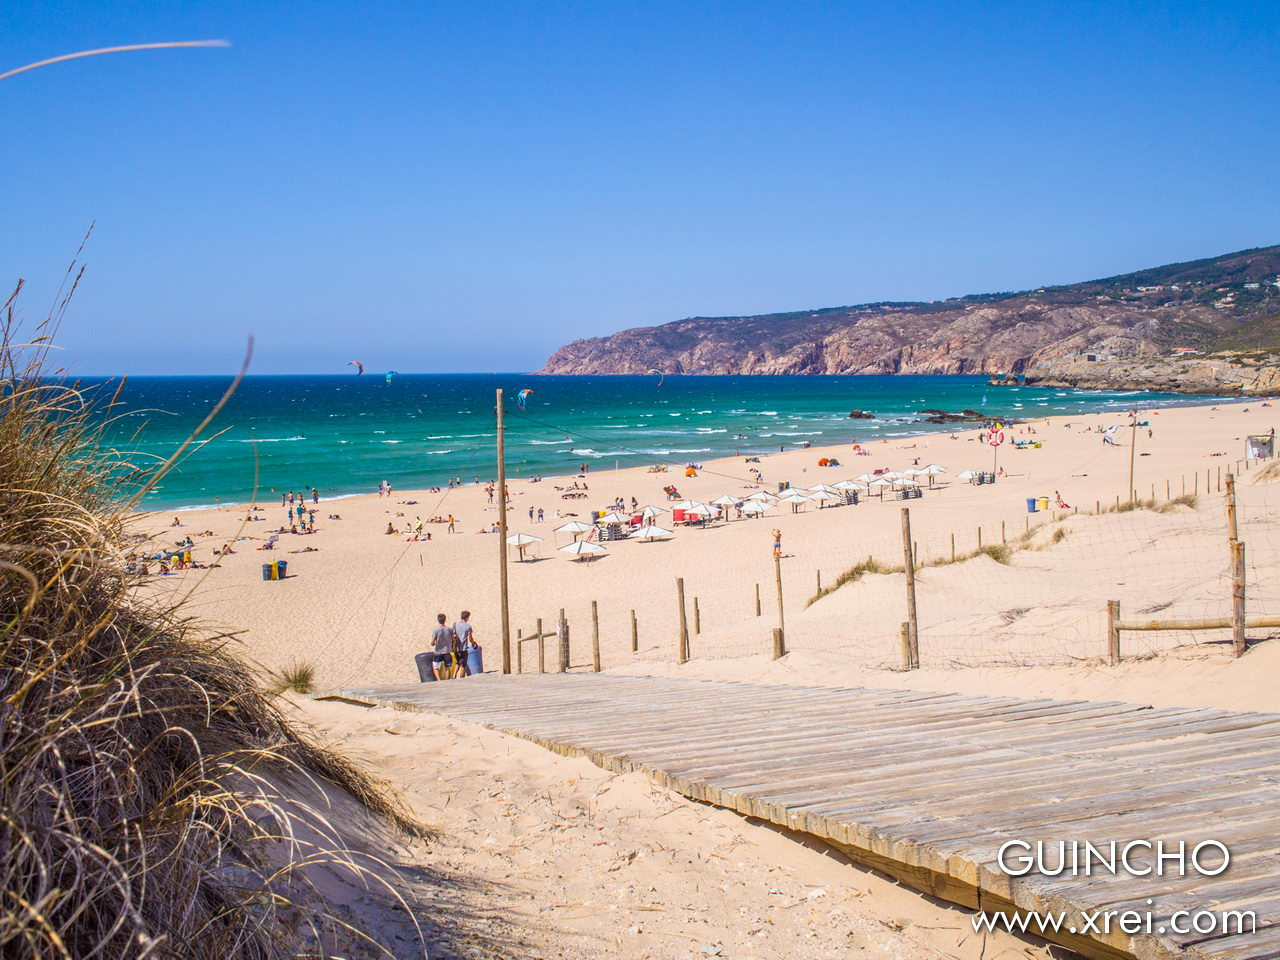 Guincho is a beach and a natural park located north of the village of Cascais, ideal for surfing, kitesurfing and windsurfing due to the strong winds that exist there all year round.